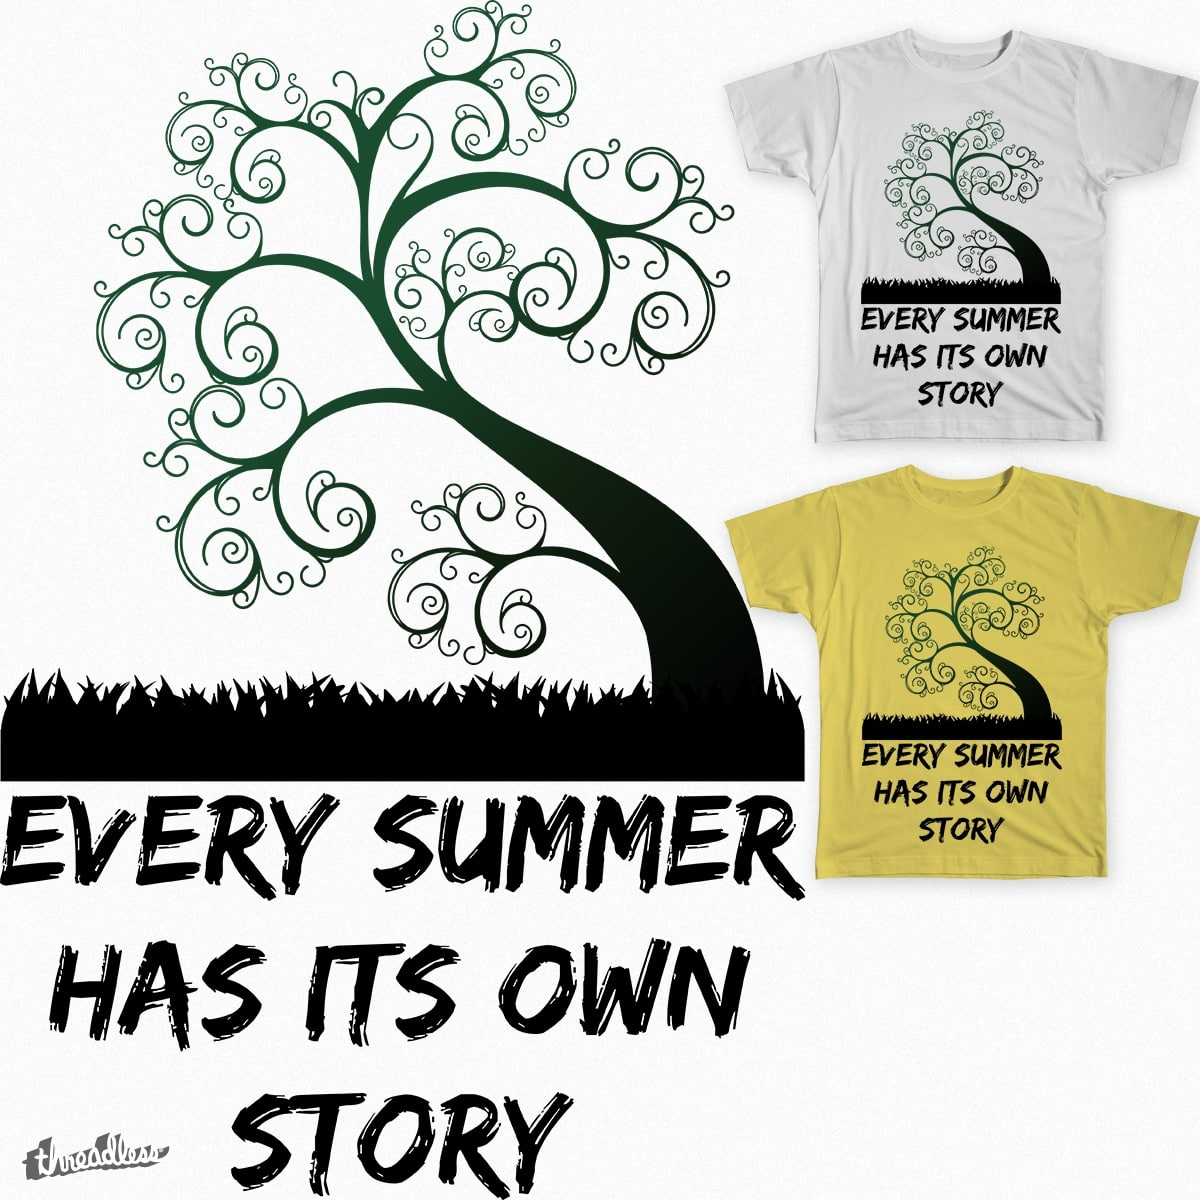 Every Summer Has Its Own Story By Uberteess On Threadless